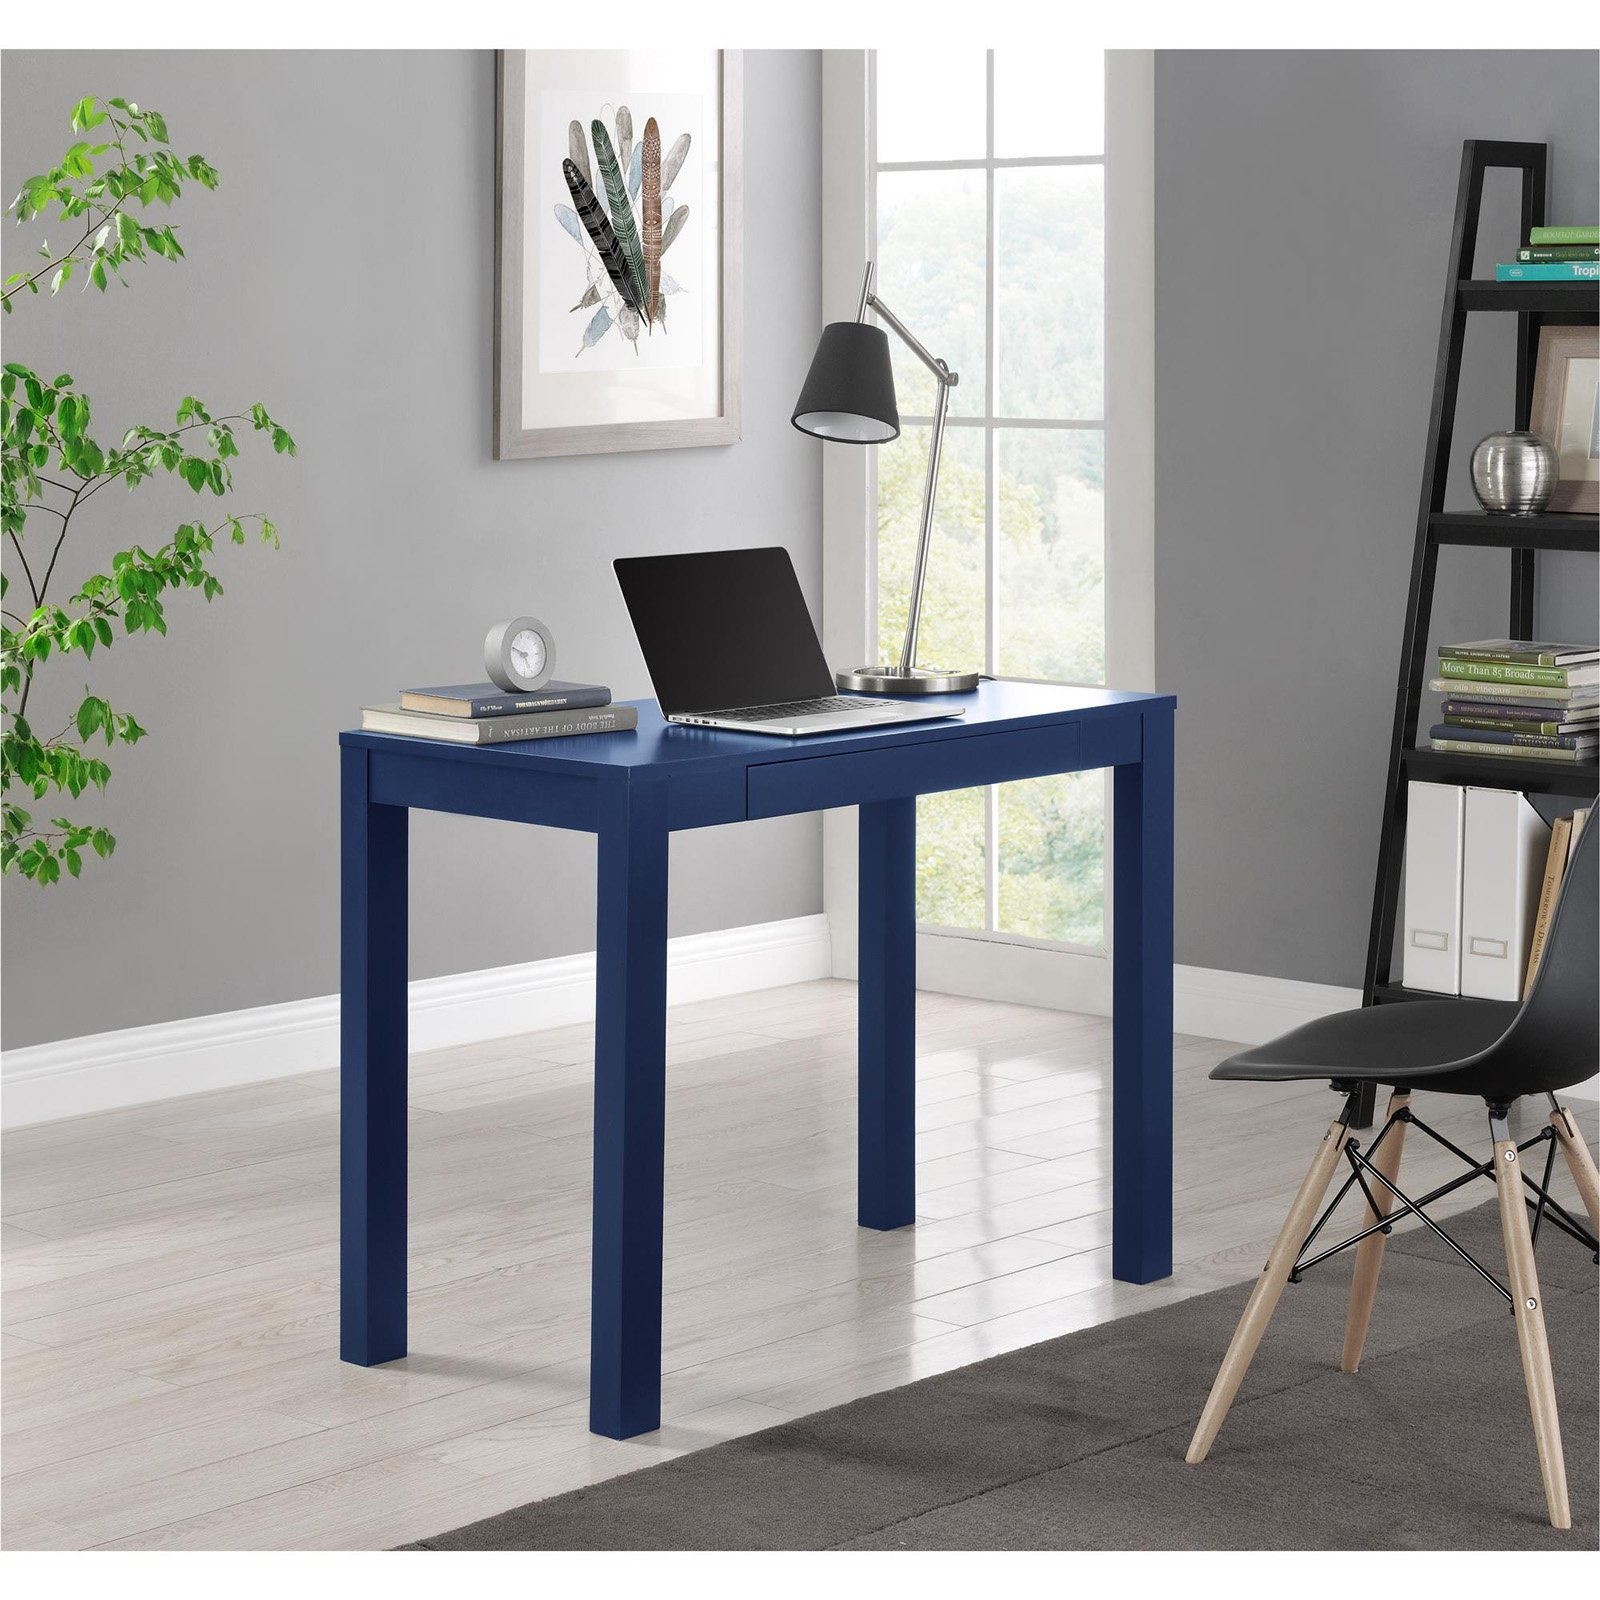 Altra Parson Desk with Drawer, Blue